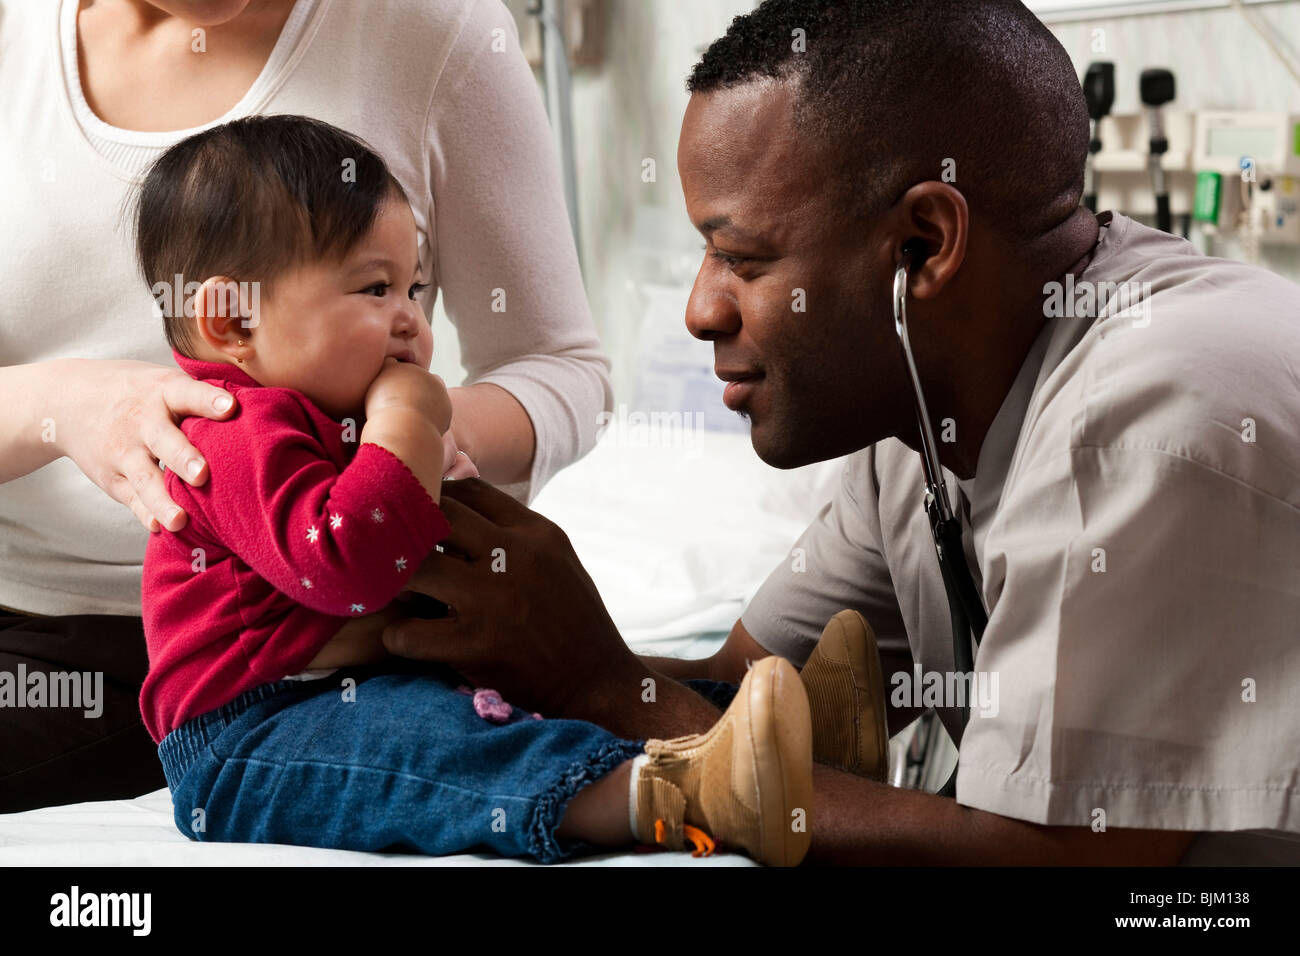 Mother and baby in examining room with doctor - Stock Image